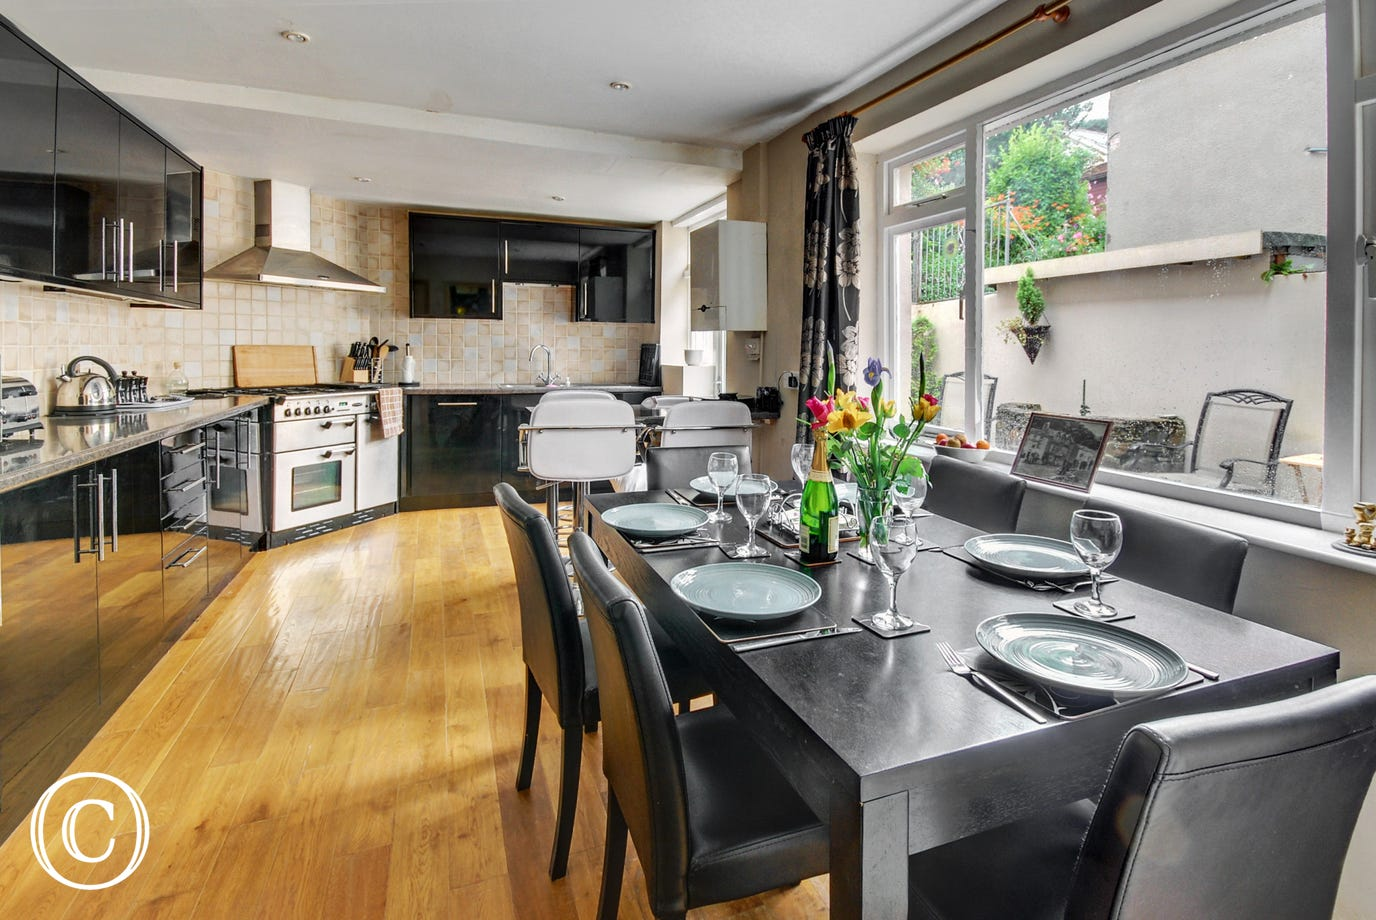 The spacious and modern kitchen/diner with a good size dining table for 6 to 8 and a breakfast bar for 4 is ideal for enjoying leisurely breakfasts or a family meals